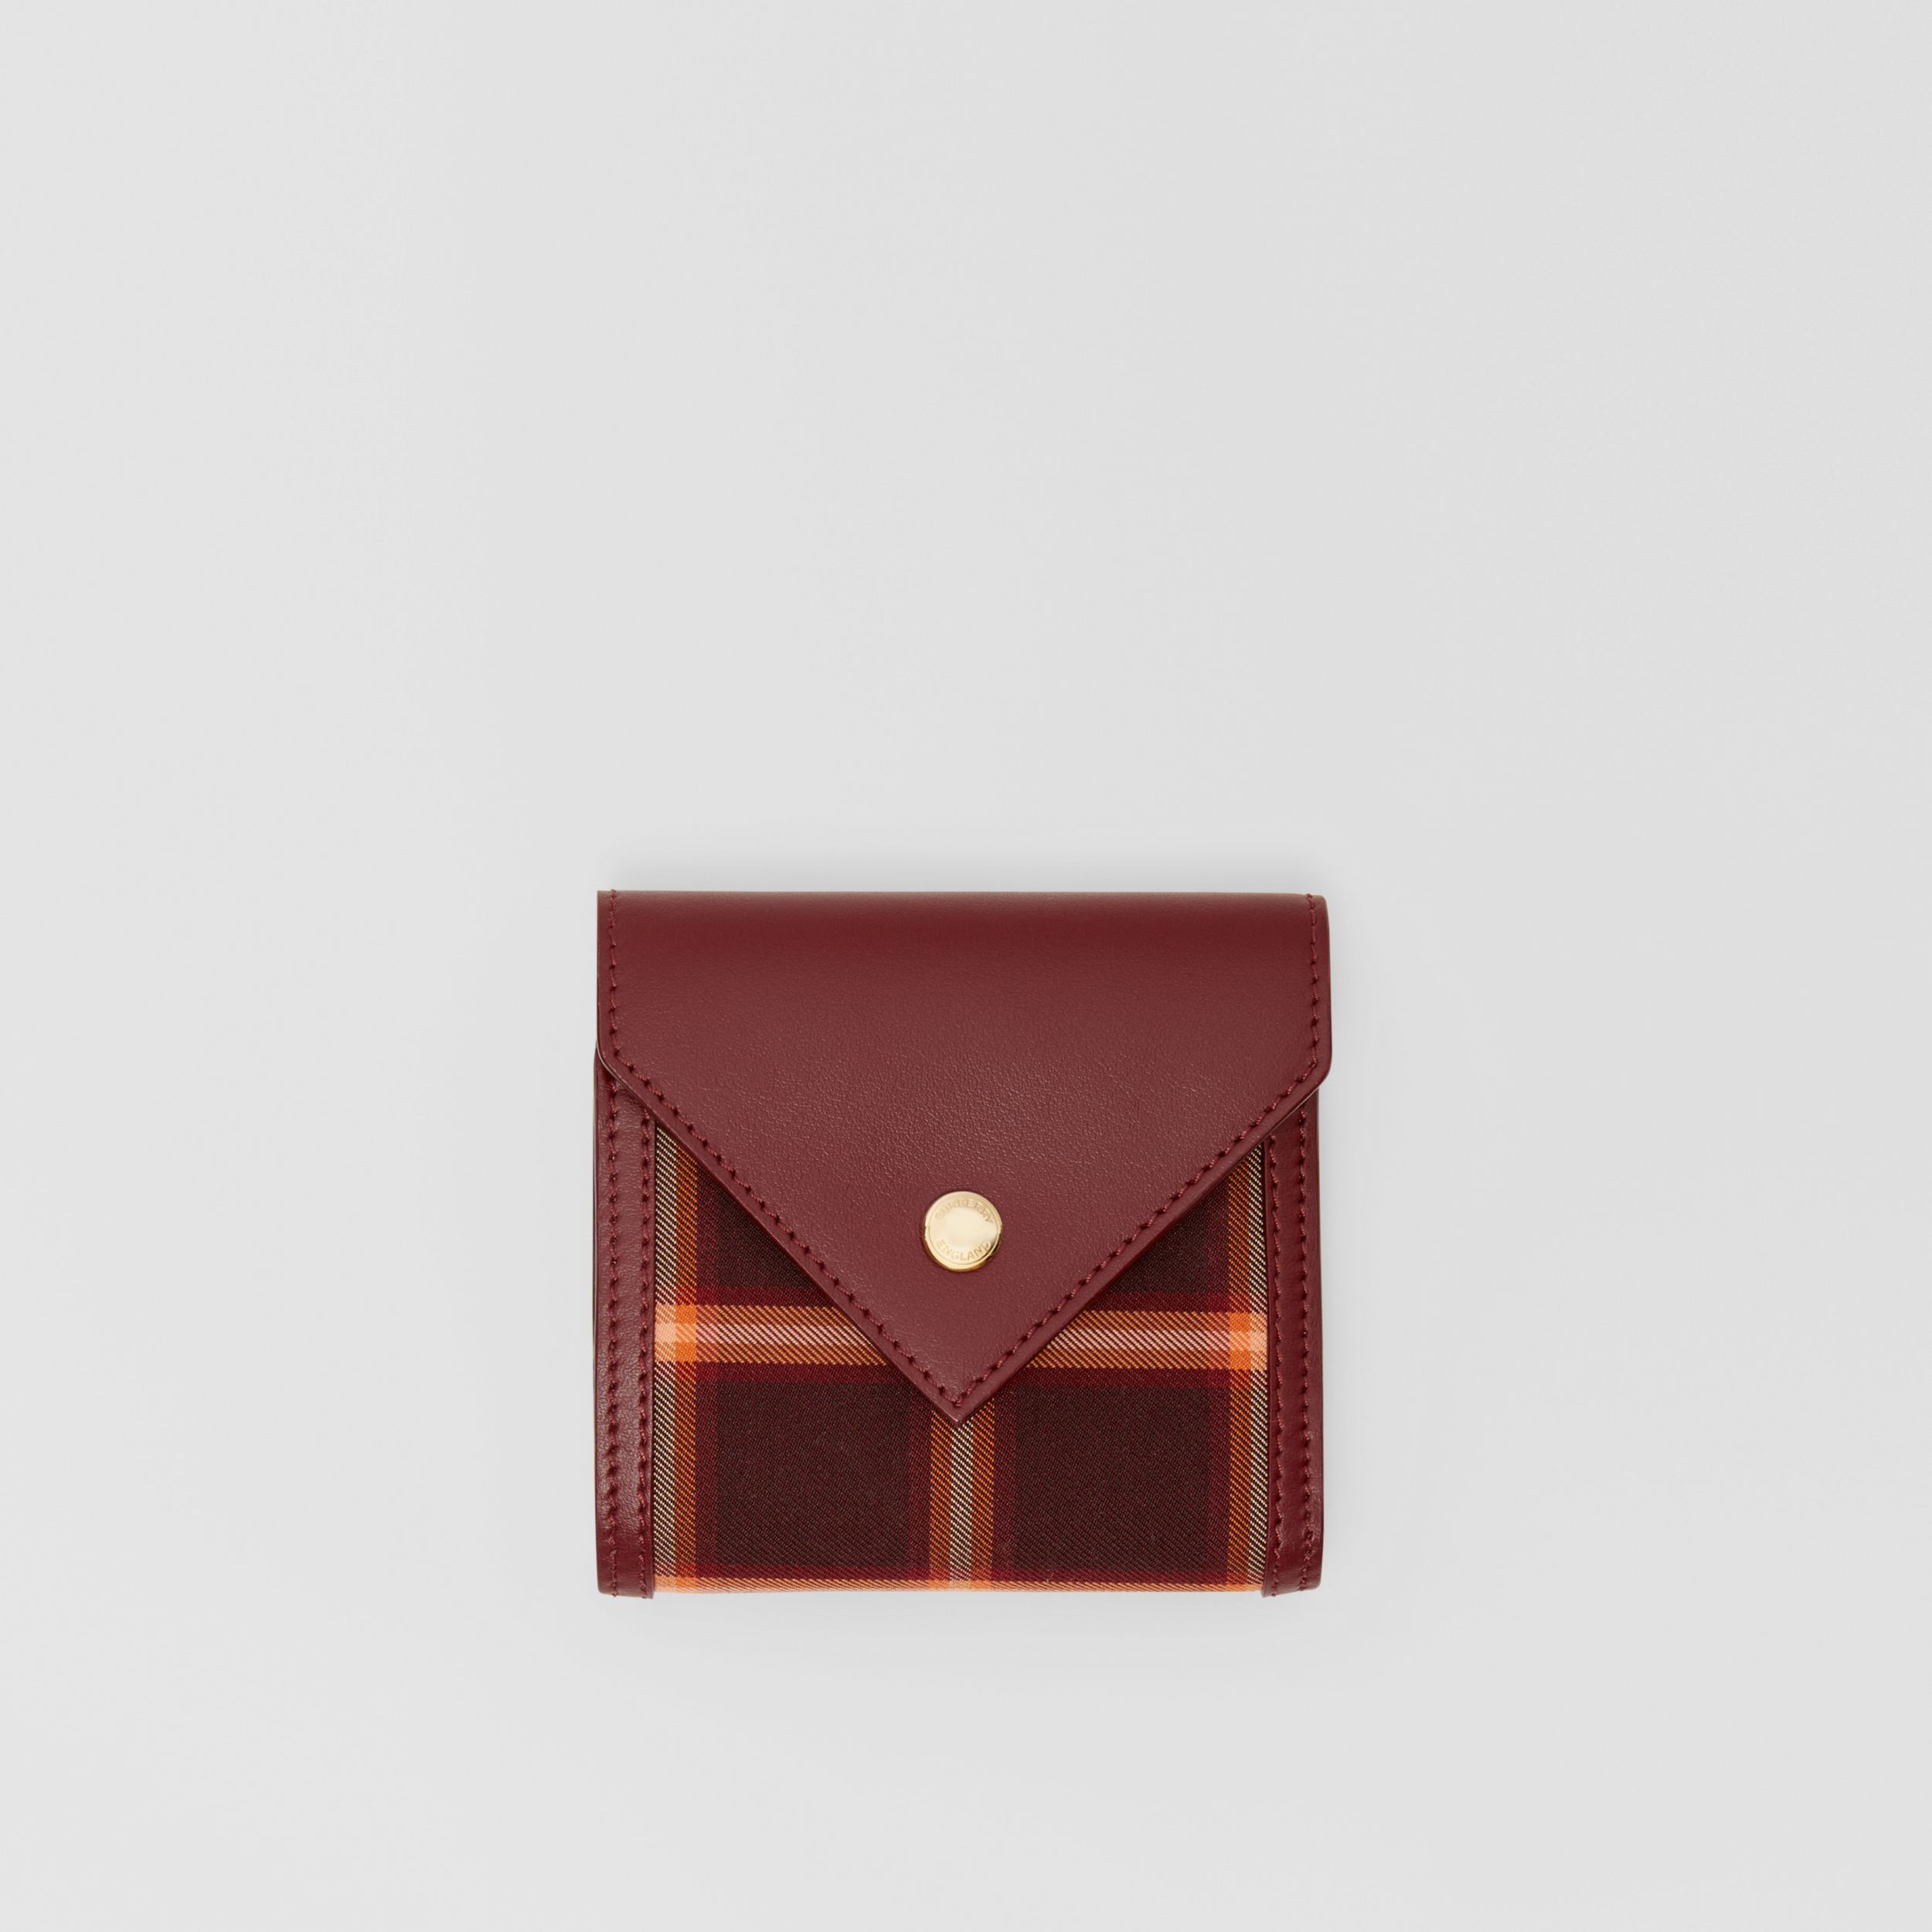 Tartan Technical Cotton and Leather Folding Wallet in Burgundy - Women | Burberry - 1